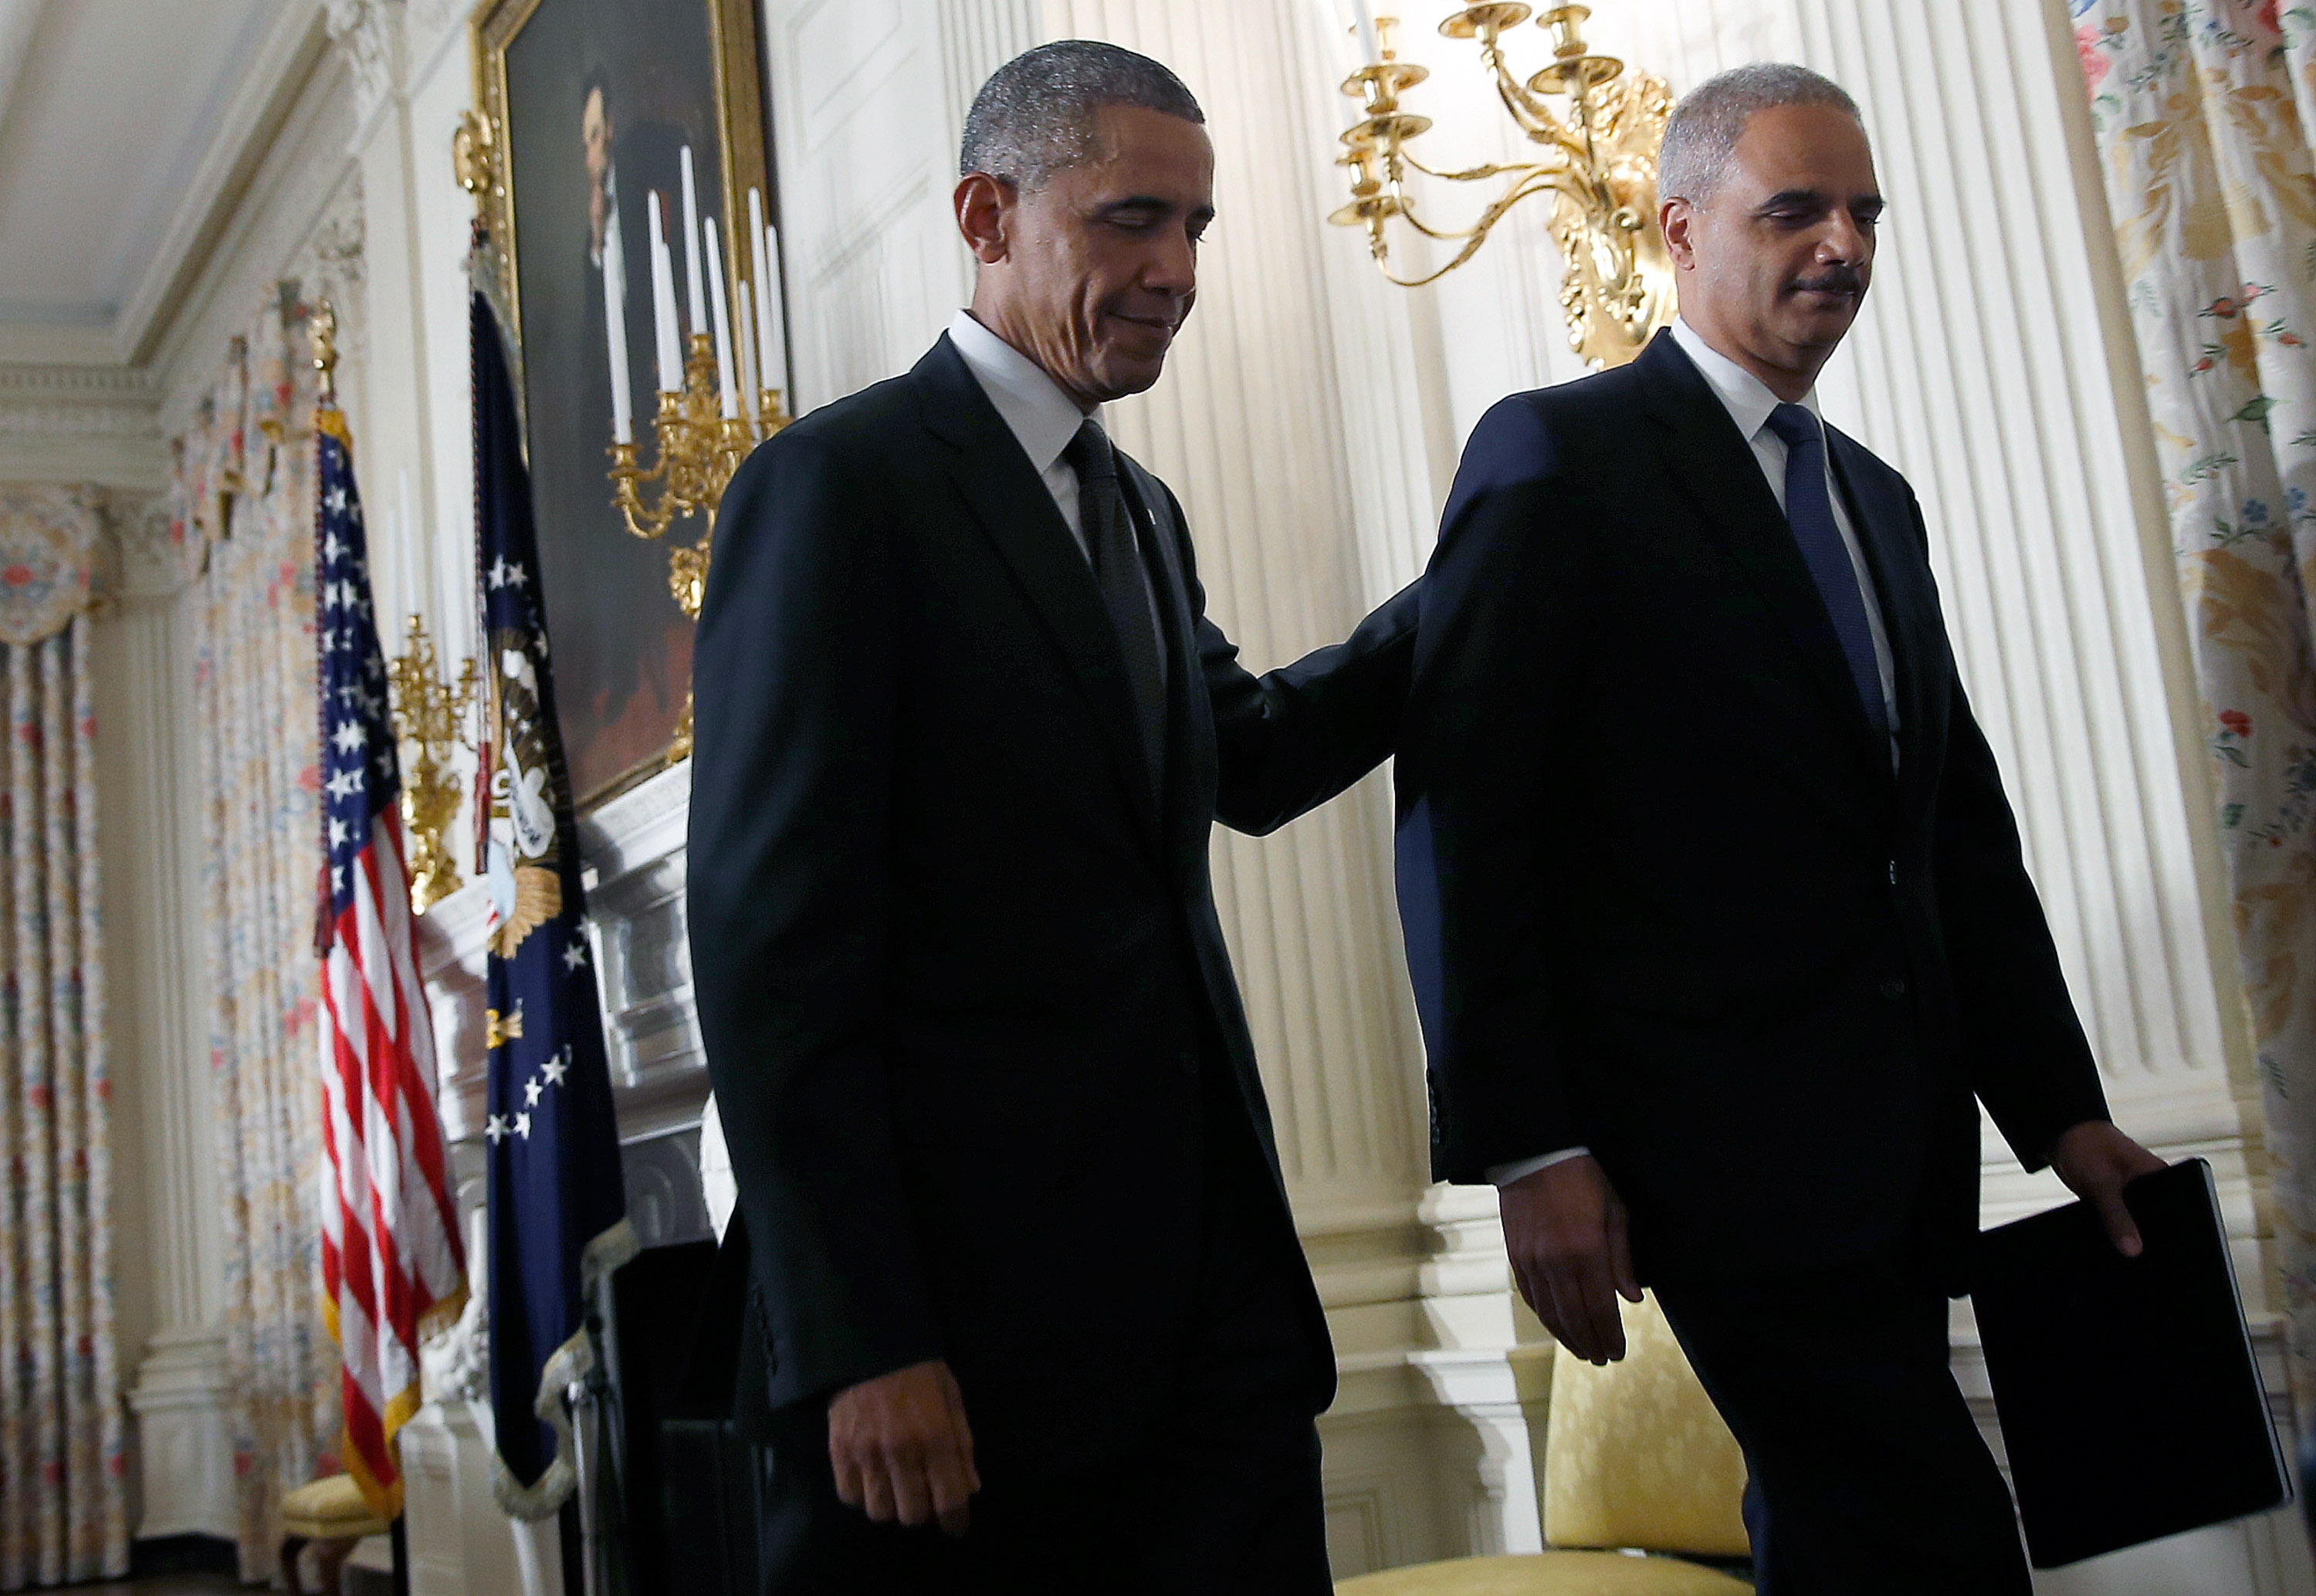 President Barack Obama and Eric Holder walking in the White House